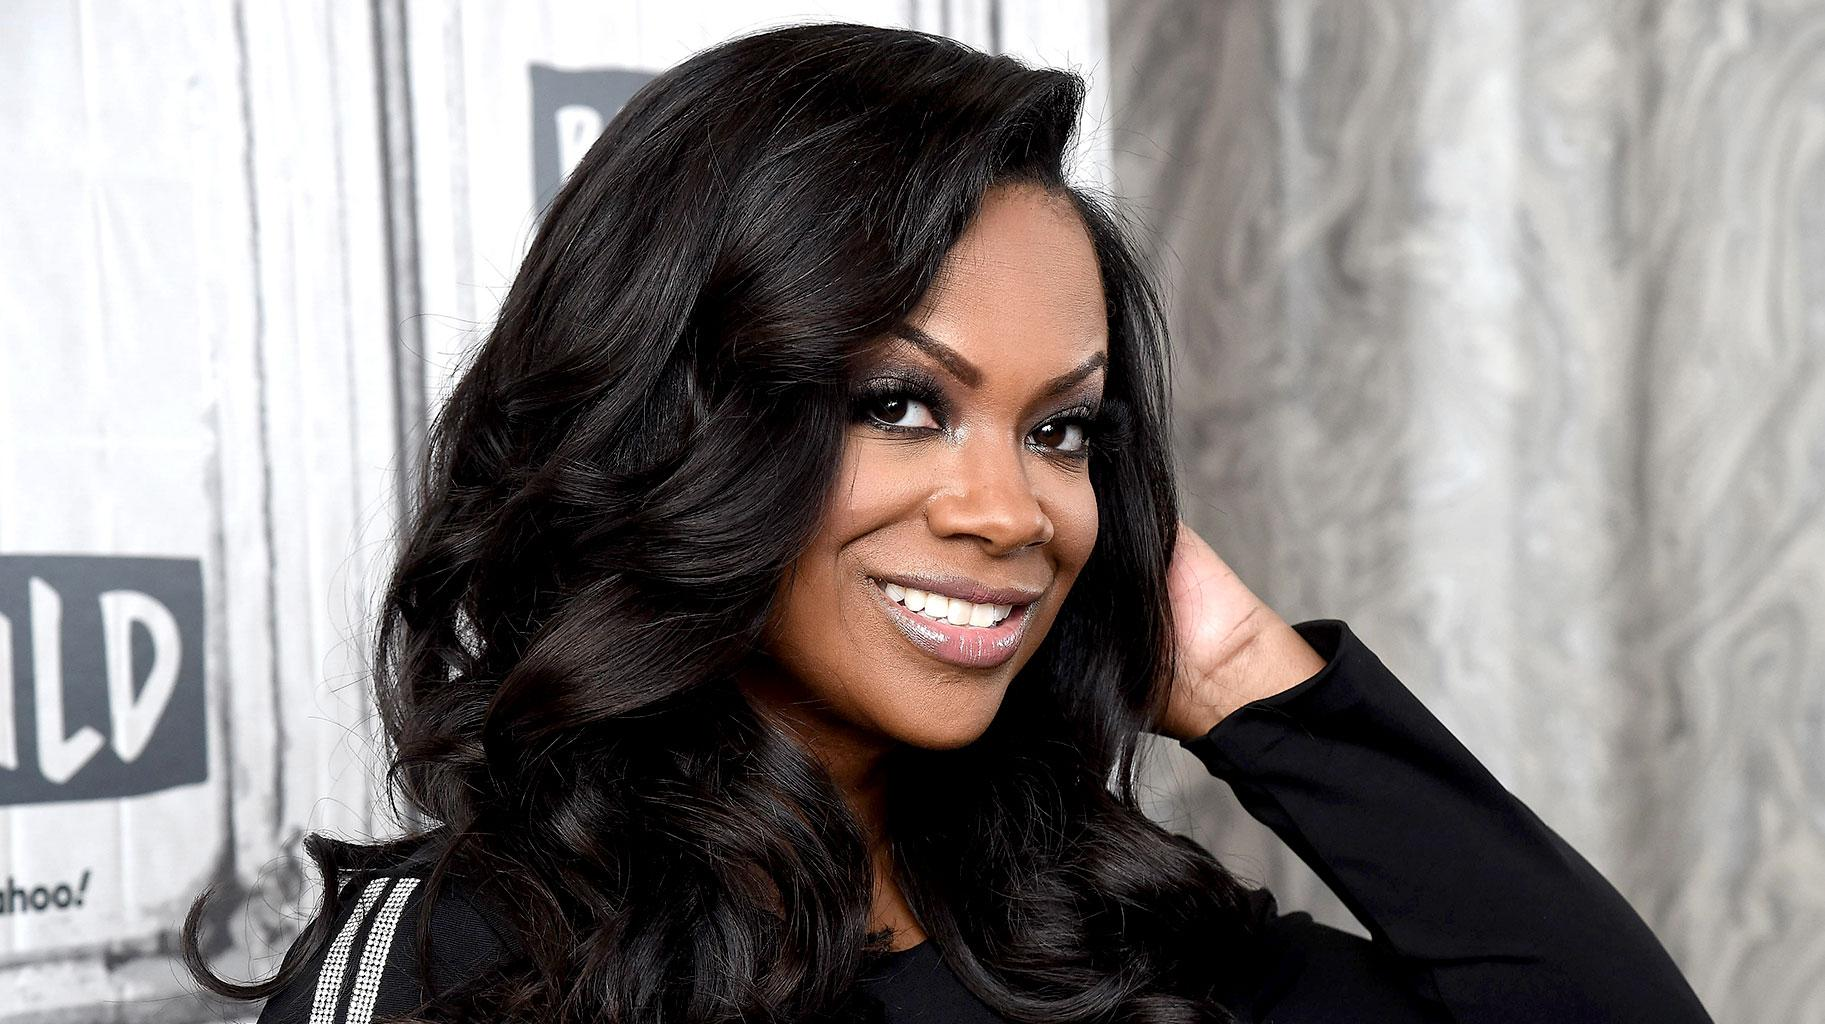 Kandi Burruss Shares Pics From Her Recent Girls' Night Out